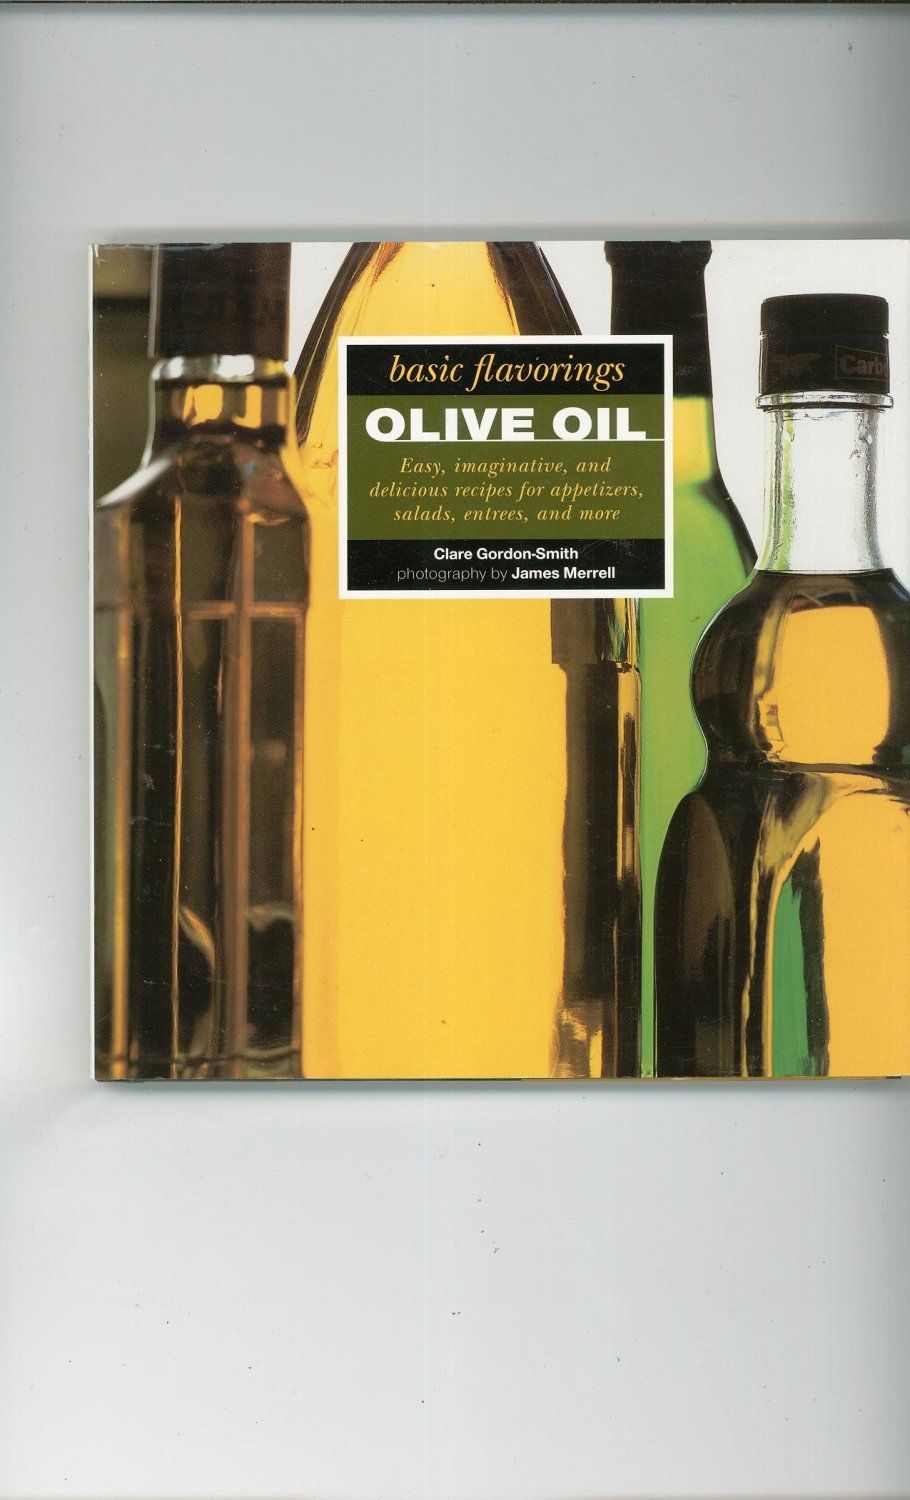 Basic Flavorings Olive Oil Cookbook 1561387770